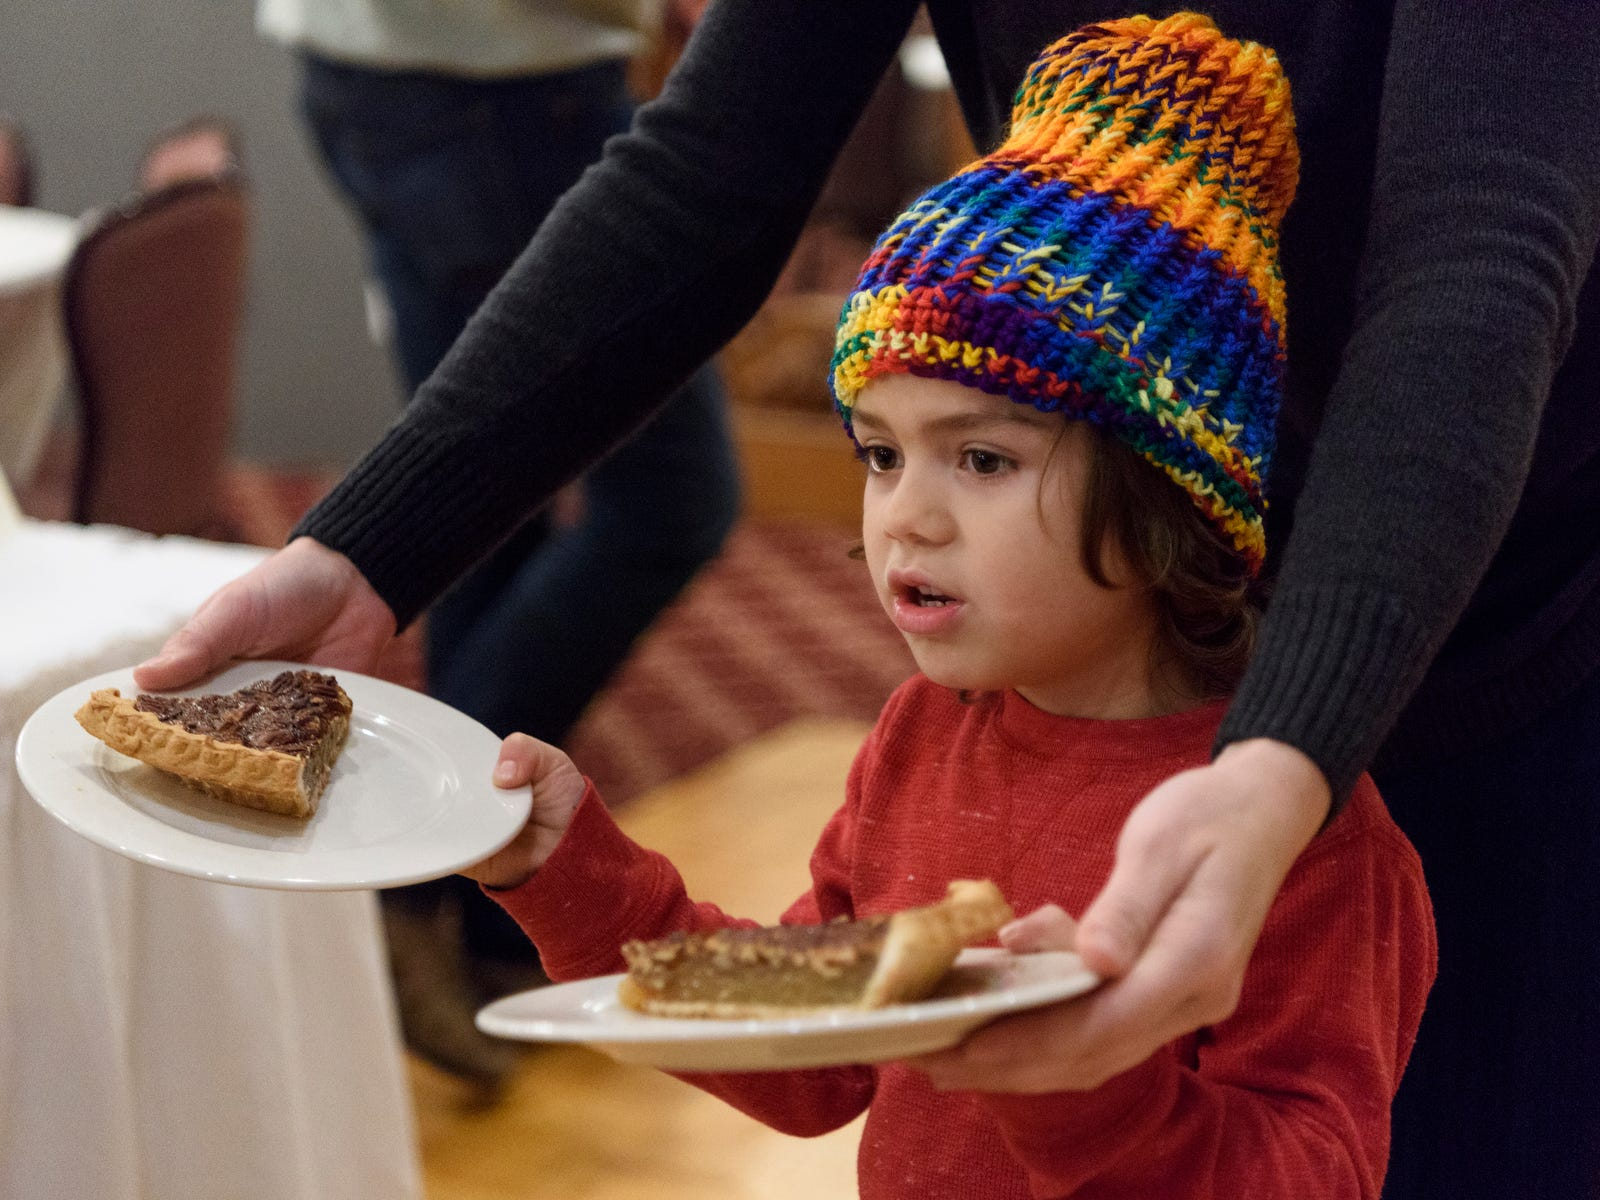 Silas Lyons, 5, helps his mother Dana Lyons deliver two slices of Pecan pie to their friends Judy and Bud Dugan, not pictured, during the free Thanksgiving Buffet held at Sauced in Evansville's Haynie's Corner Arts District, Thursday afternoon, Nov. 22, 2018.